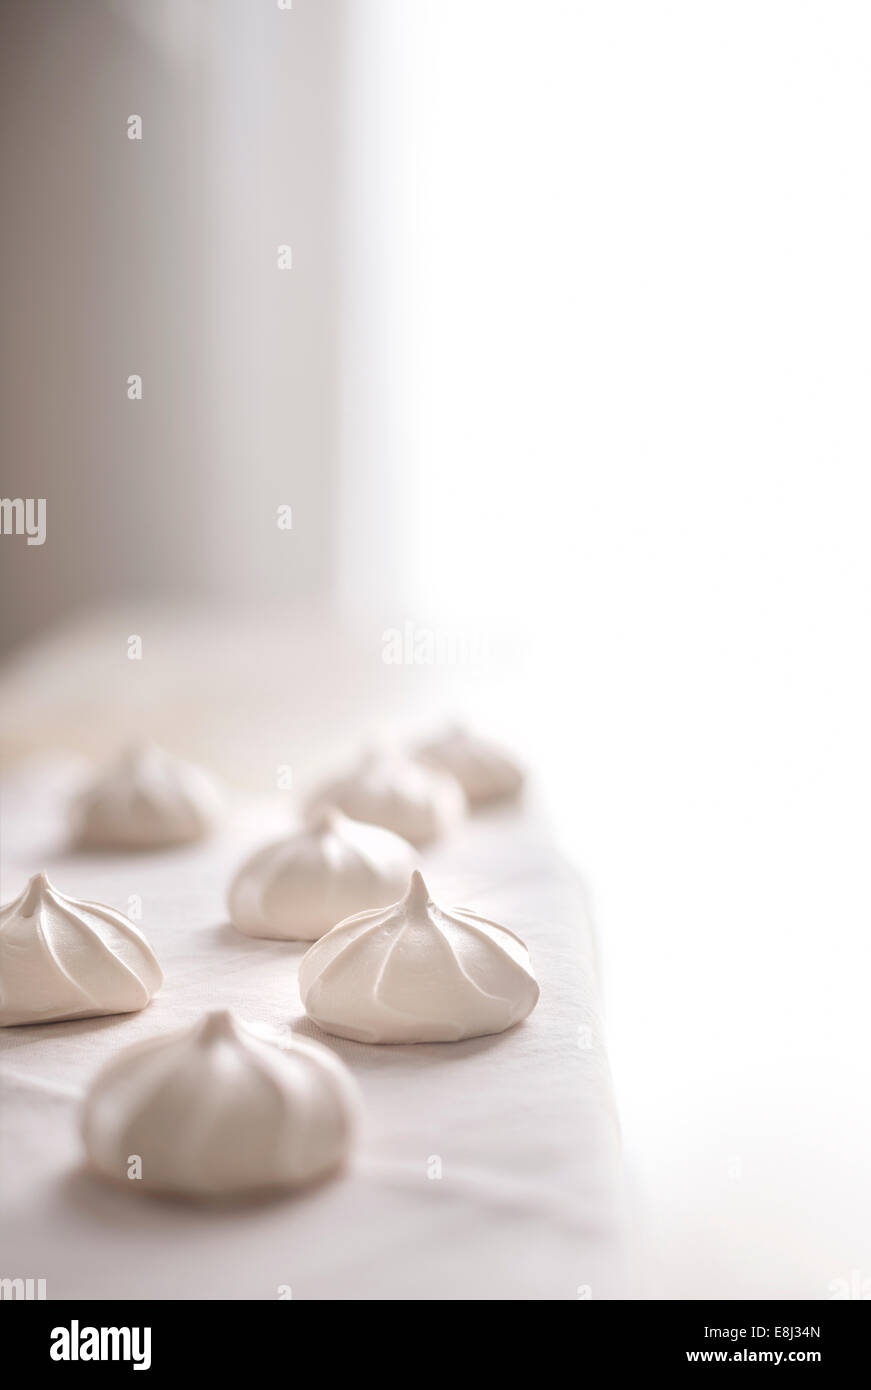 Vanilla meringue cookies on white linen with bright light background. - Stock Image